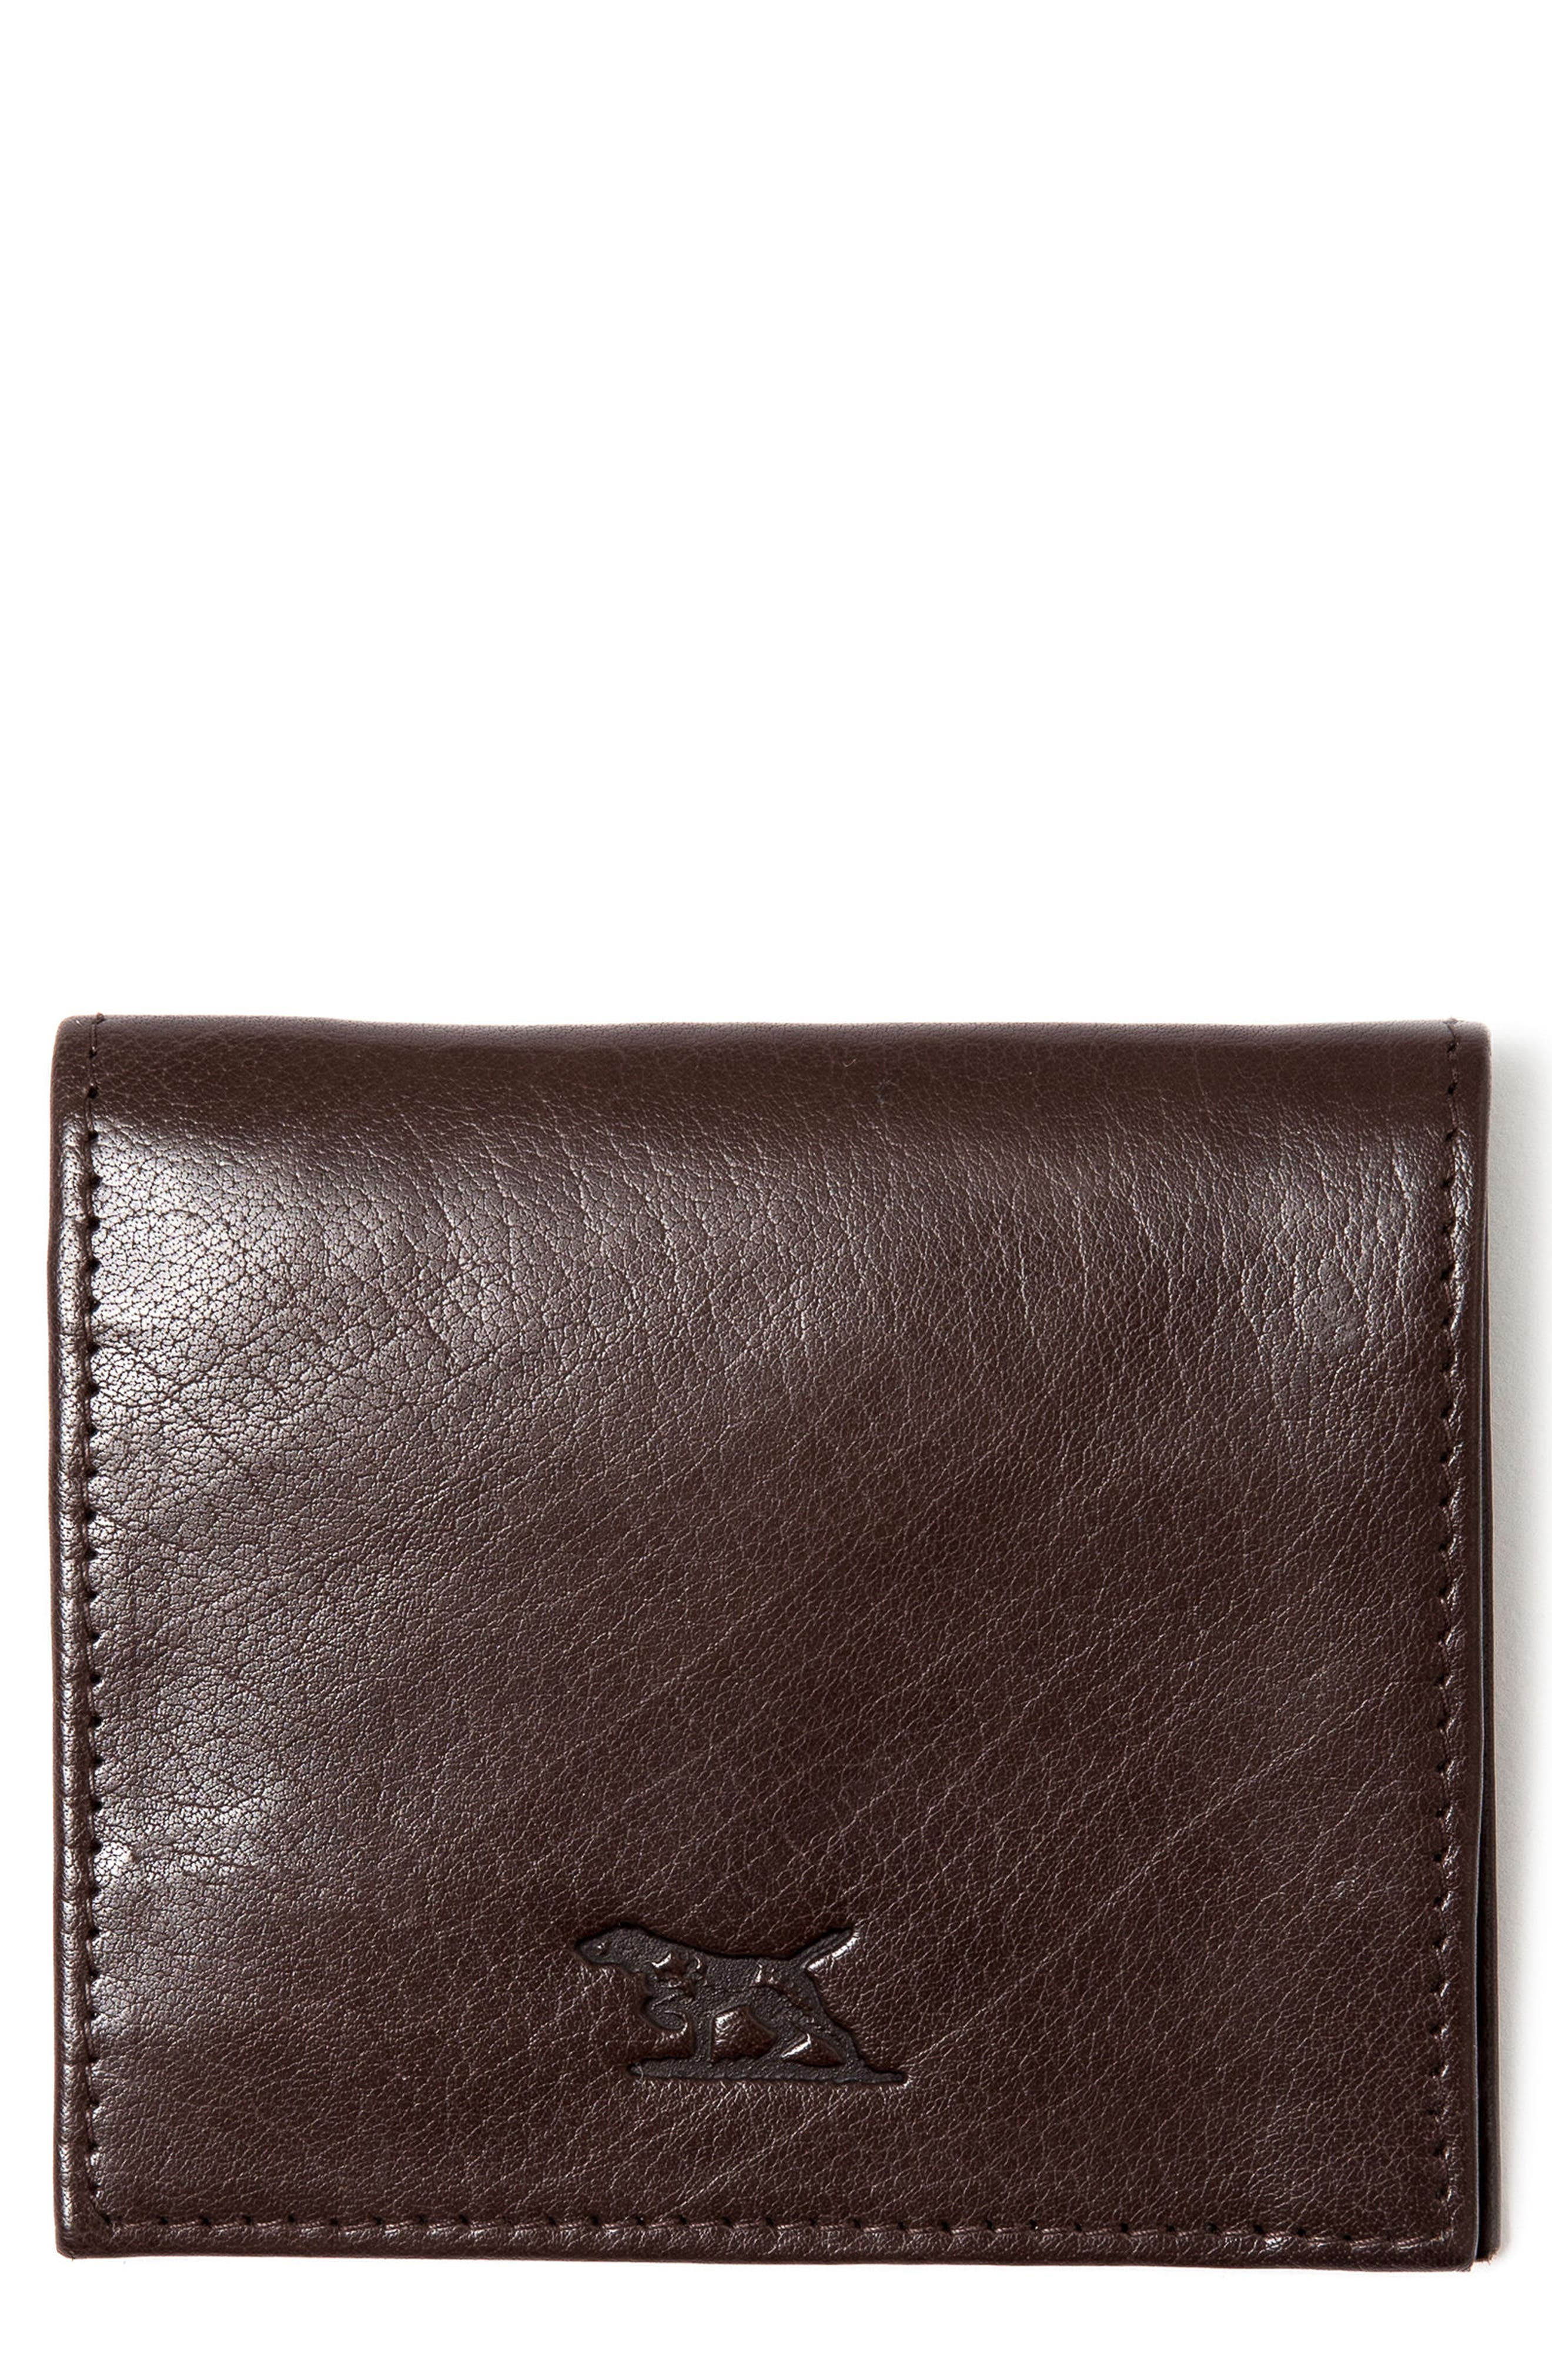 Four Mile Bay Leather Wallet,                             Main thumbnail 1, color,                             247